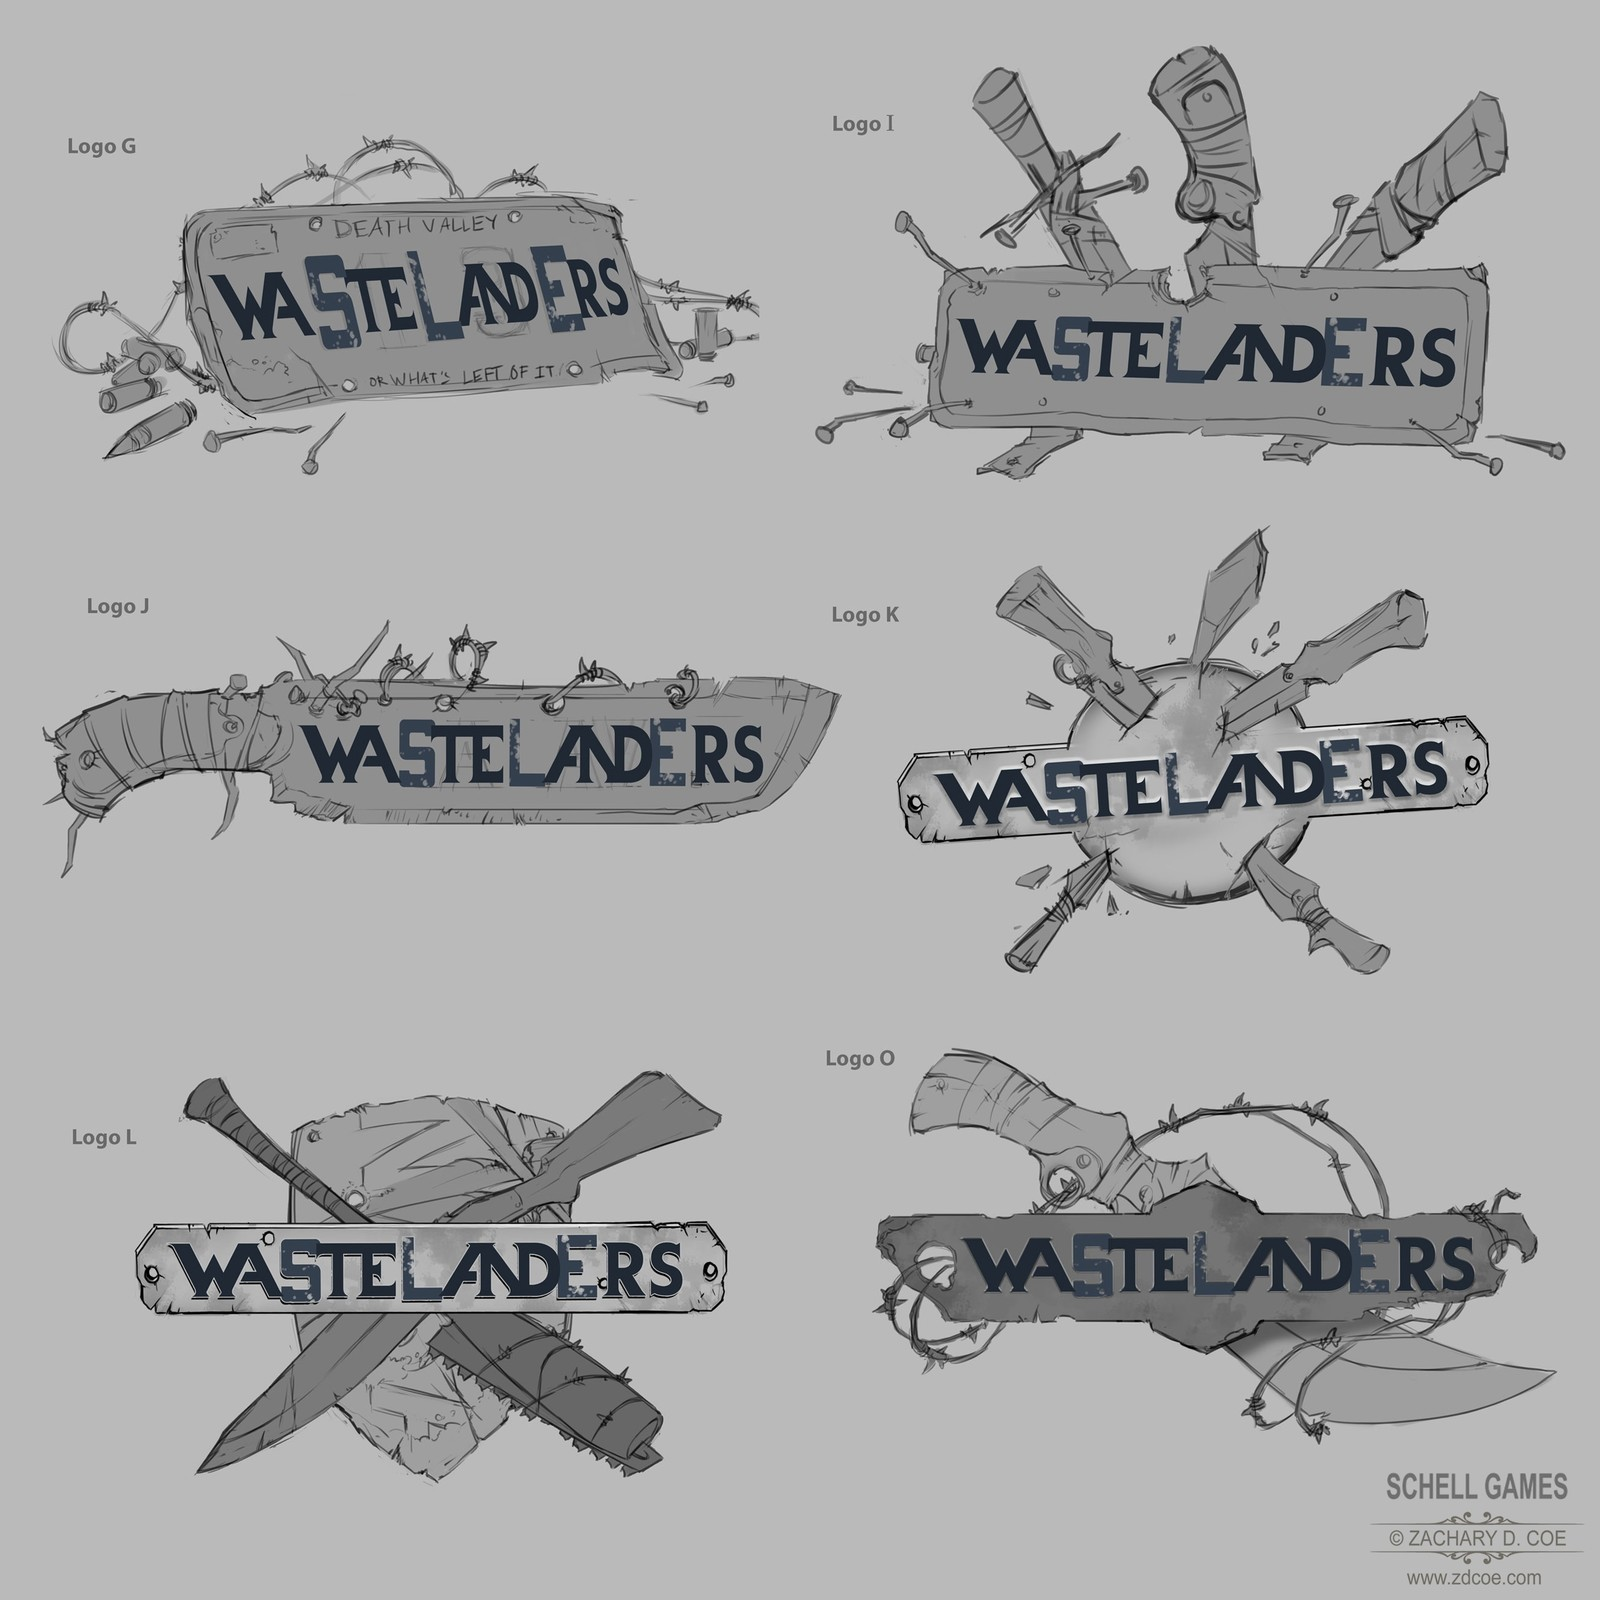 WASTELANDERS LOGO Sketches 1 by Zachary D. Coe